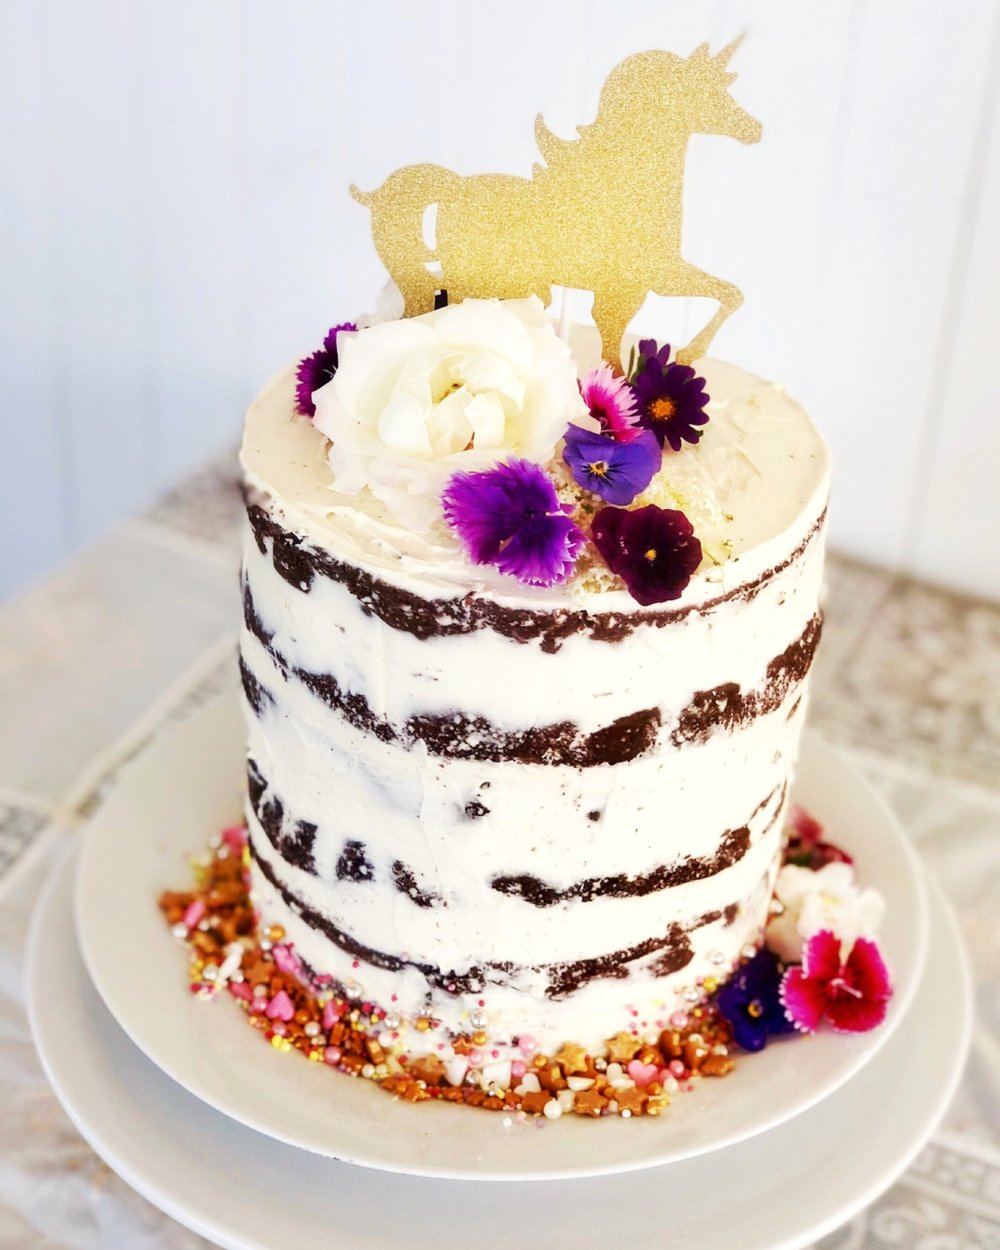 CELEBRATION CAKE $100 - Our chef can customise a beautiful semi-naked style celebration cake adorned with fresh flowers to provide a decadent finale to your child's party. Serves up to 30 people.